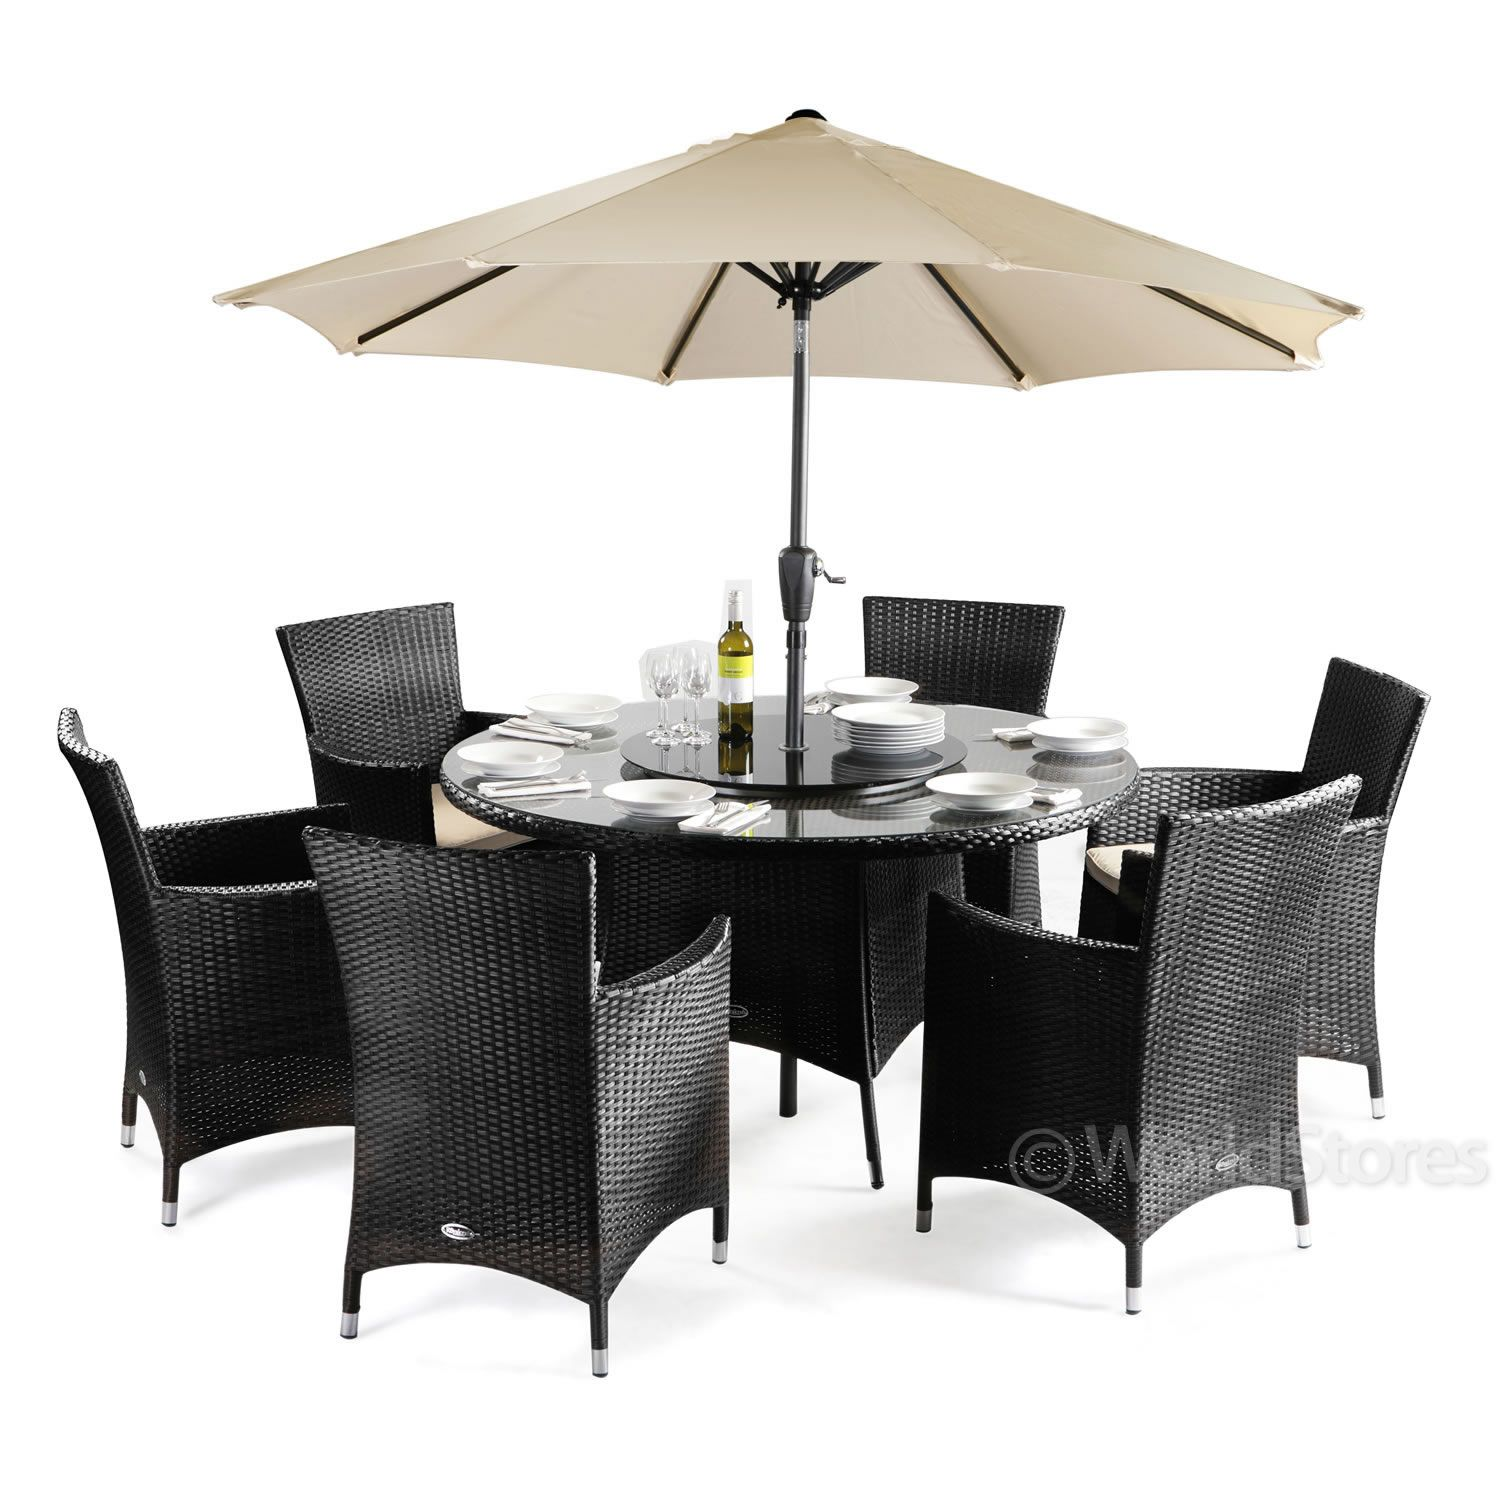 rattan round 6 chairs patio furniture set - Rattan Garden Furniture 6 Seater